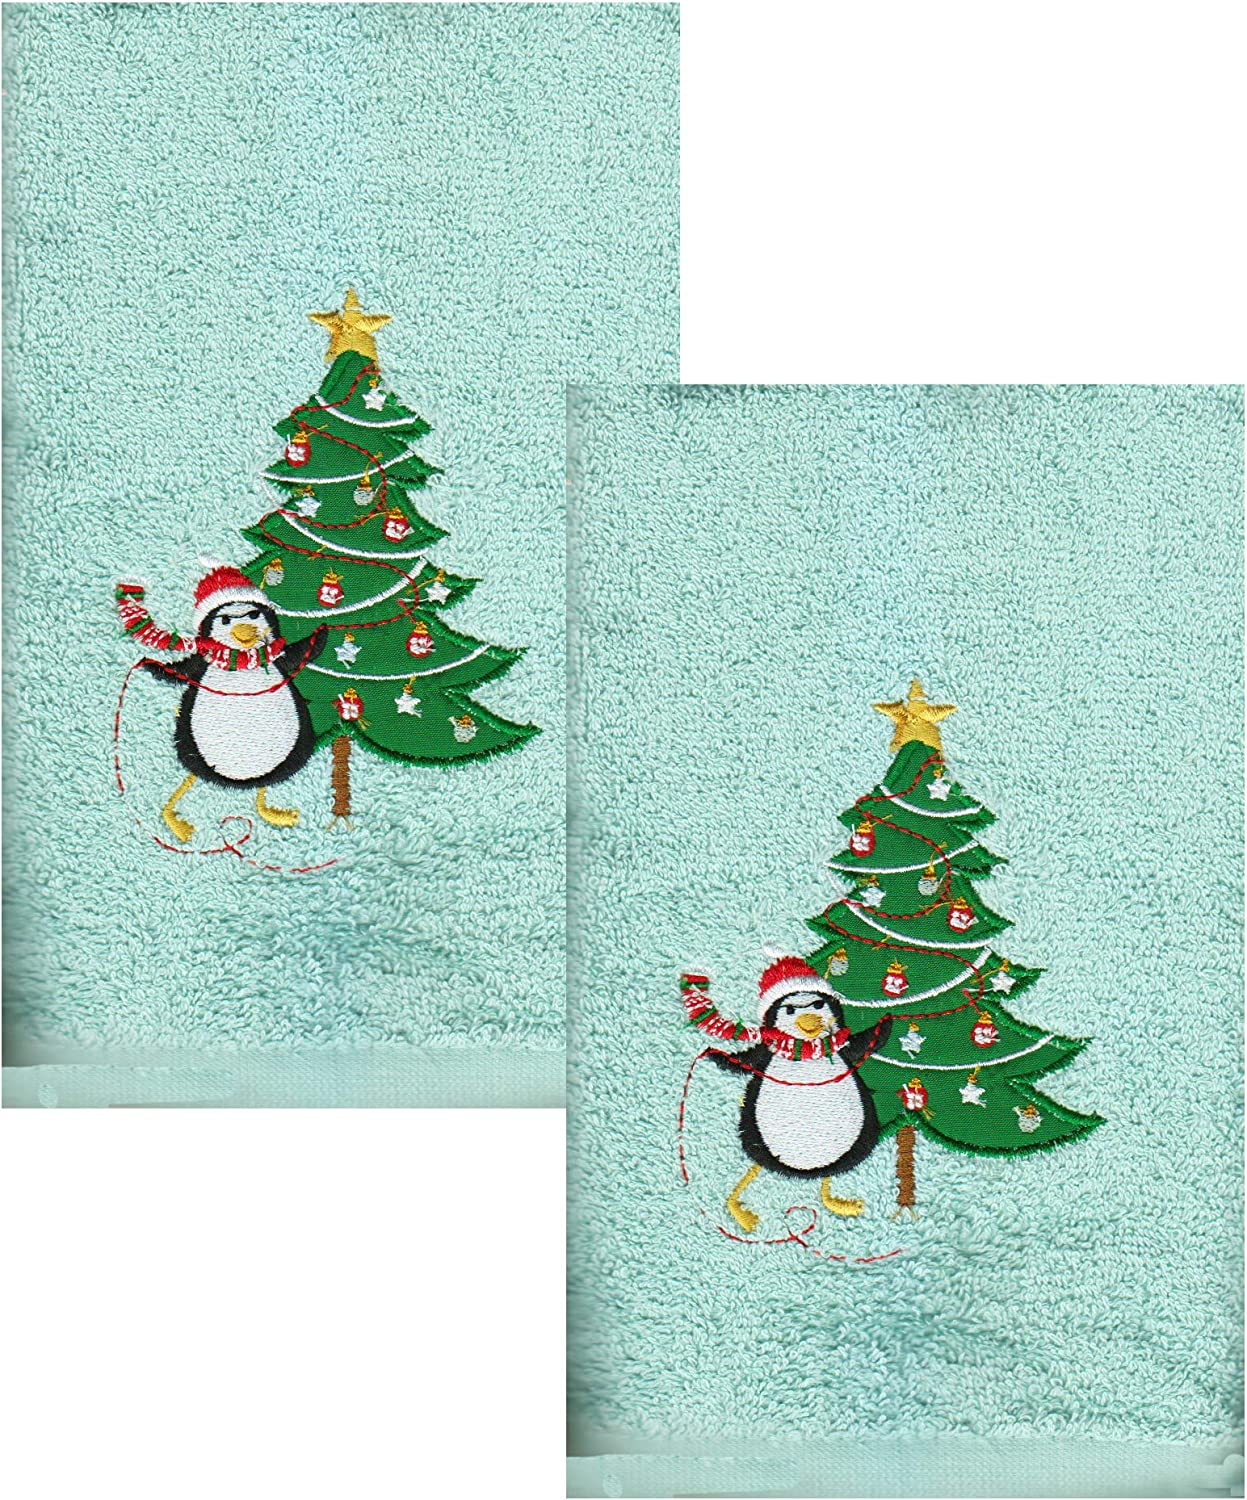 Amazon Com Nantucket Christmas Towels Aqua Blue Bath Hand Towel Set Of 2 Embroidered Penguin Appliqued Tree Decorative Design For Bathroom Decorating For The Holidays Kitchen Dining